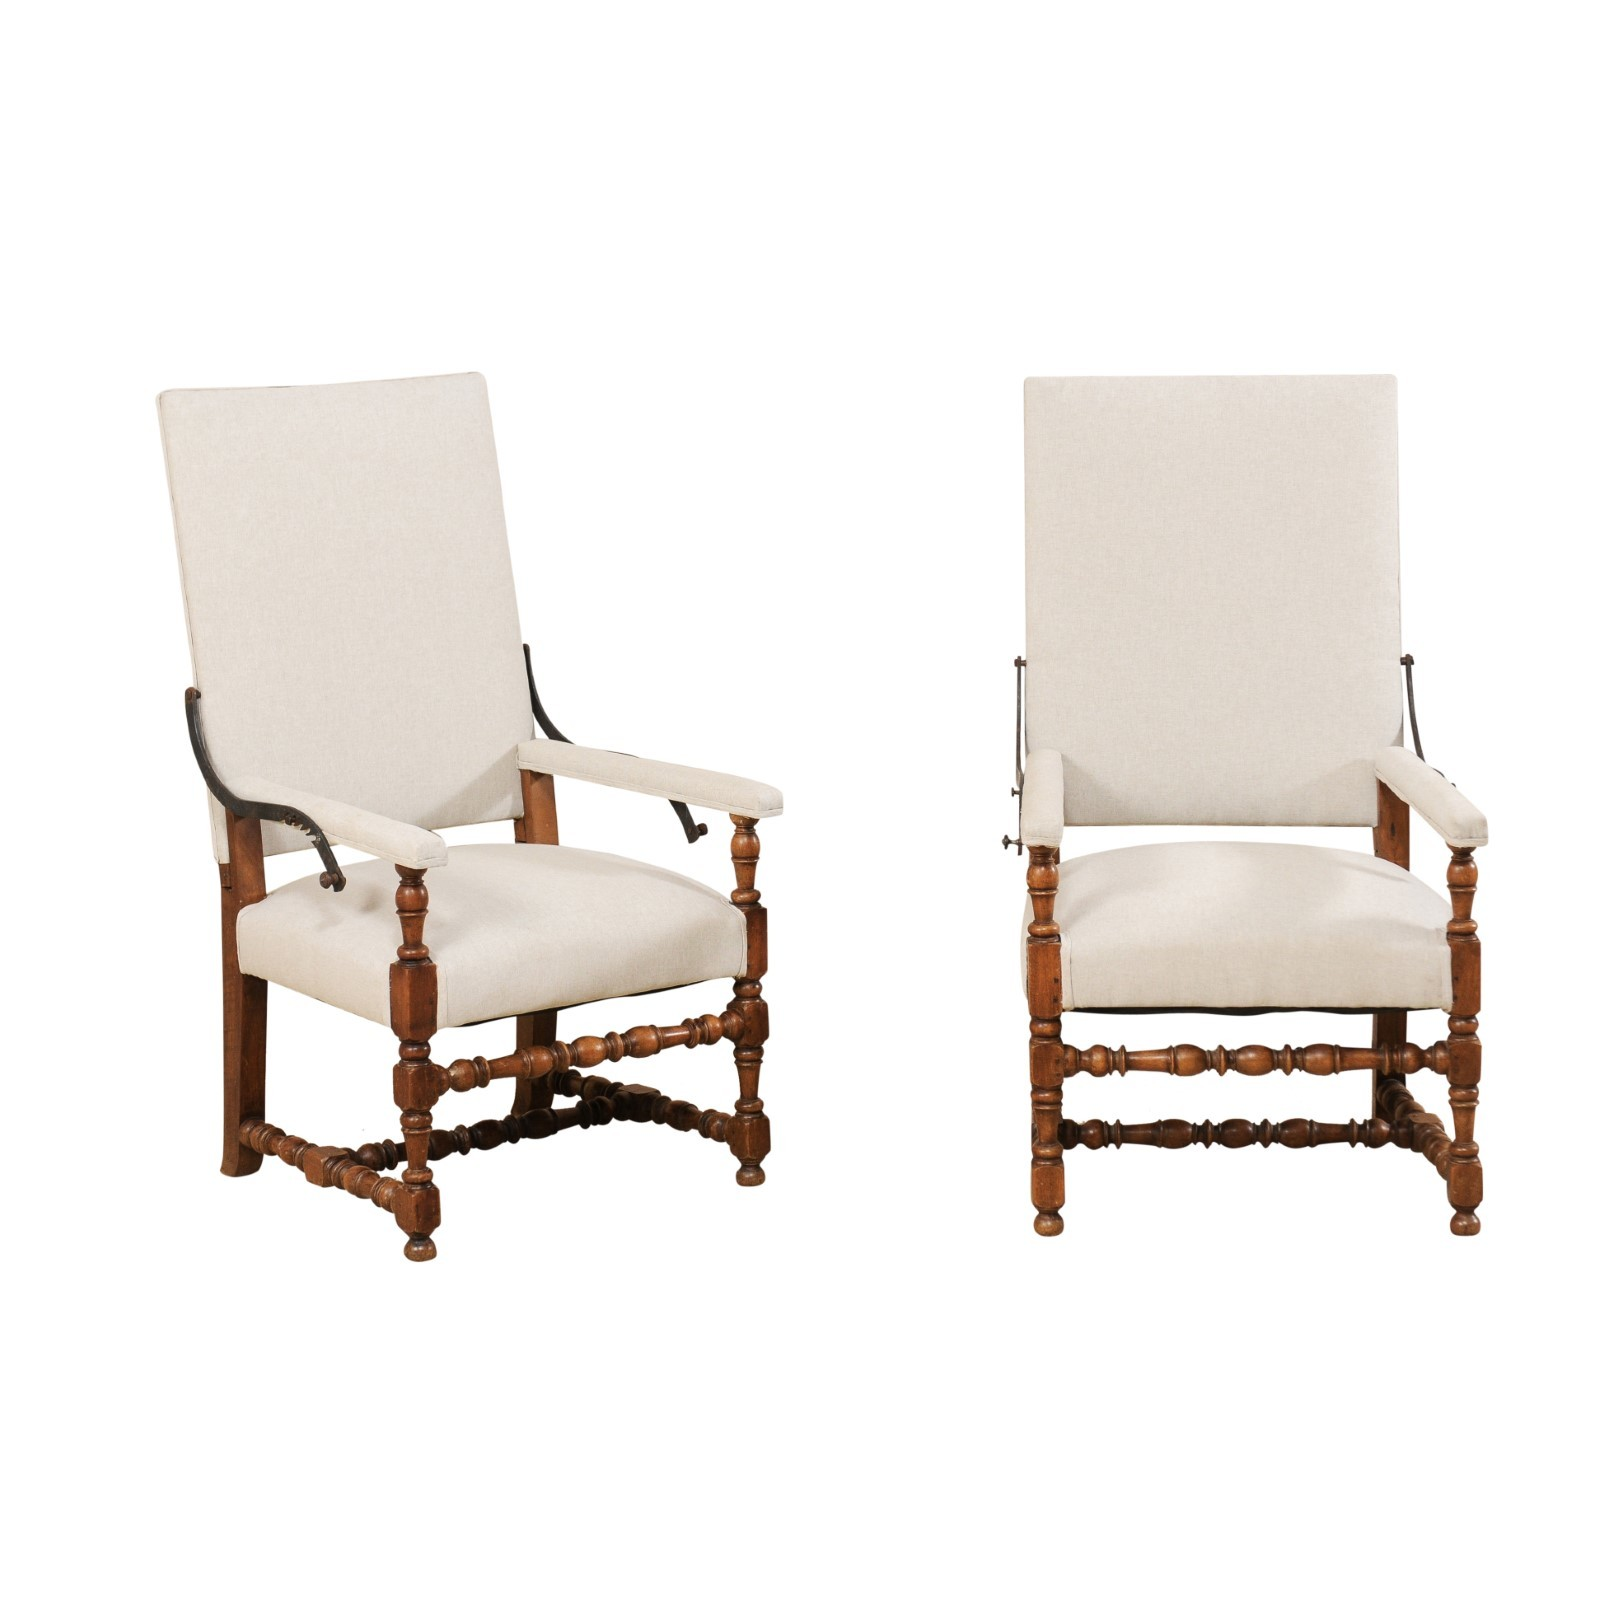 Pair of 19th C. Reclining Armchairs, Italy